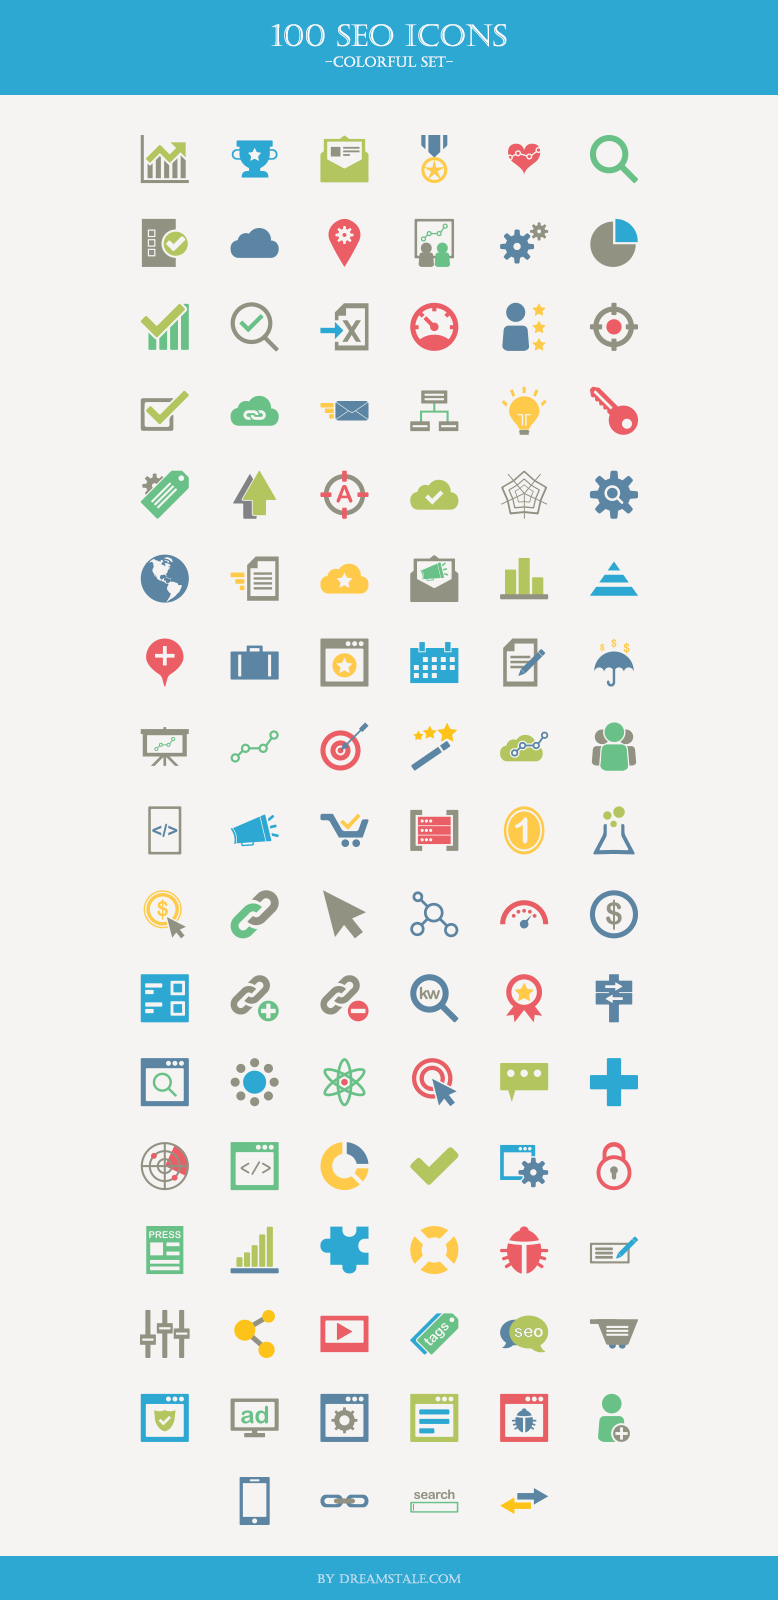 100-seo-vector-icons-premium-set-large-preview-1